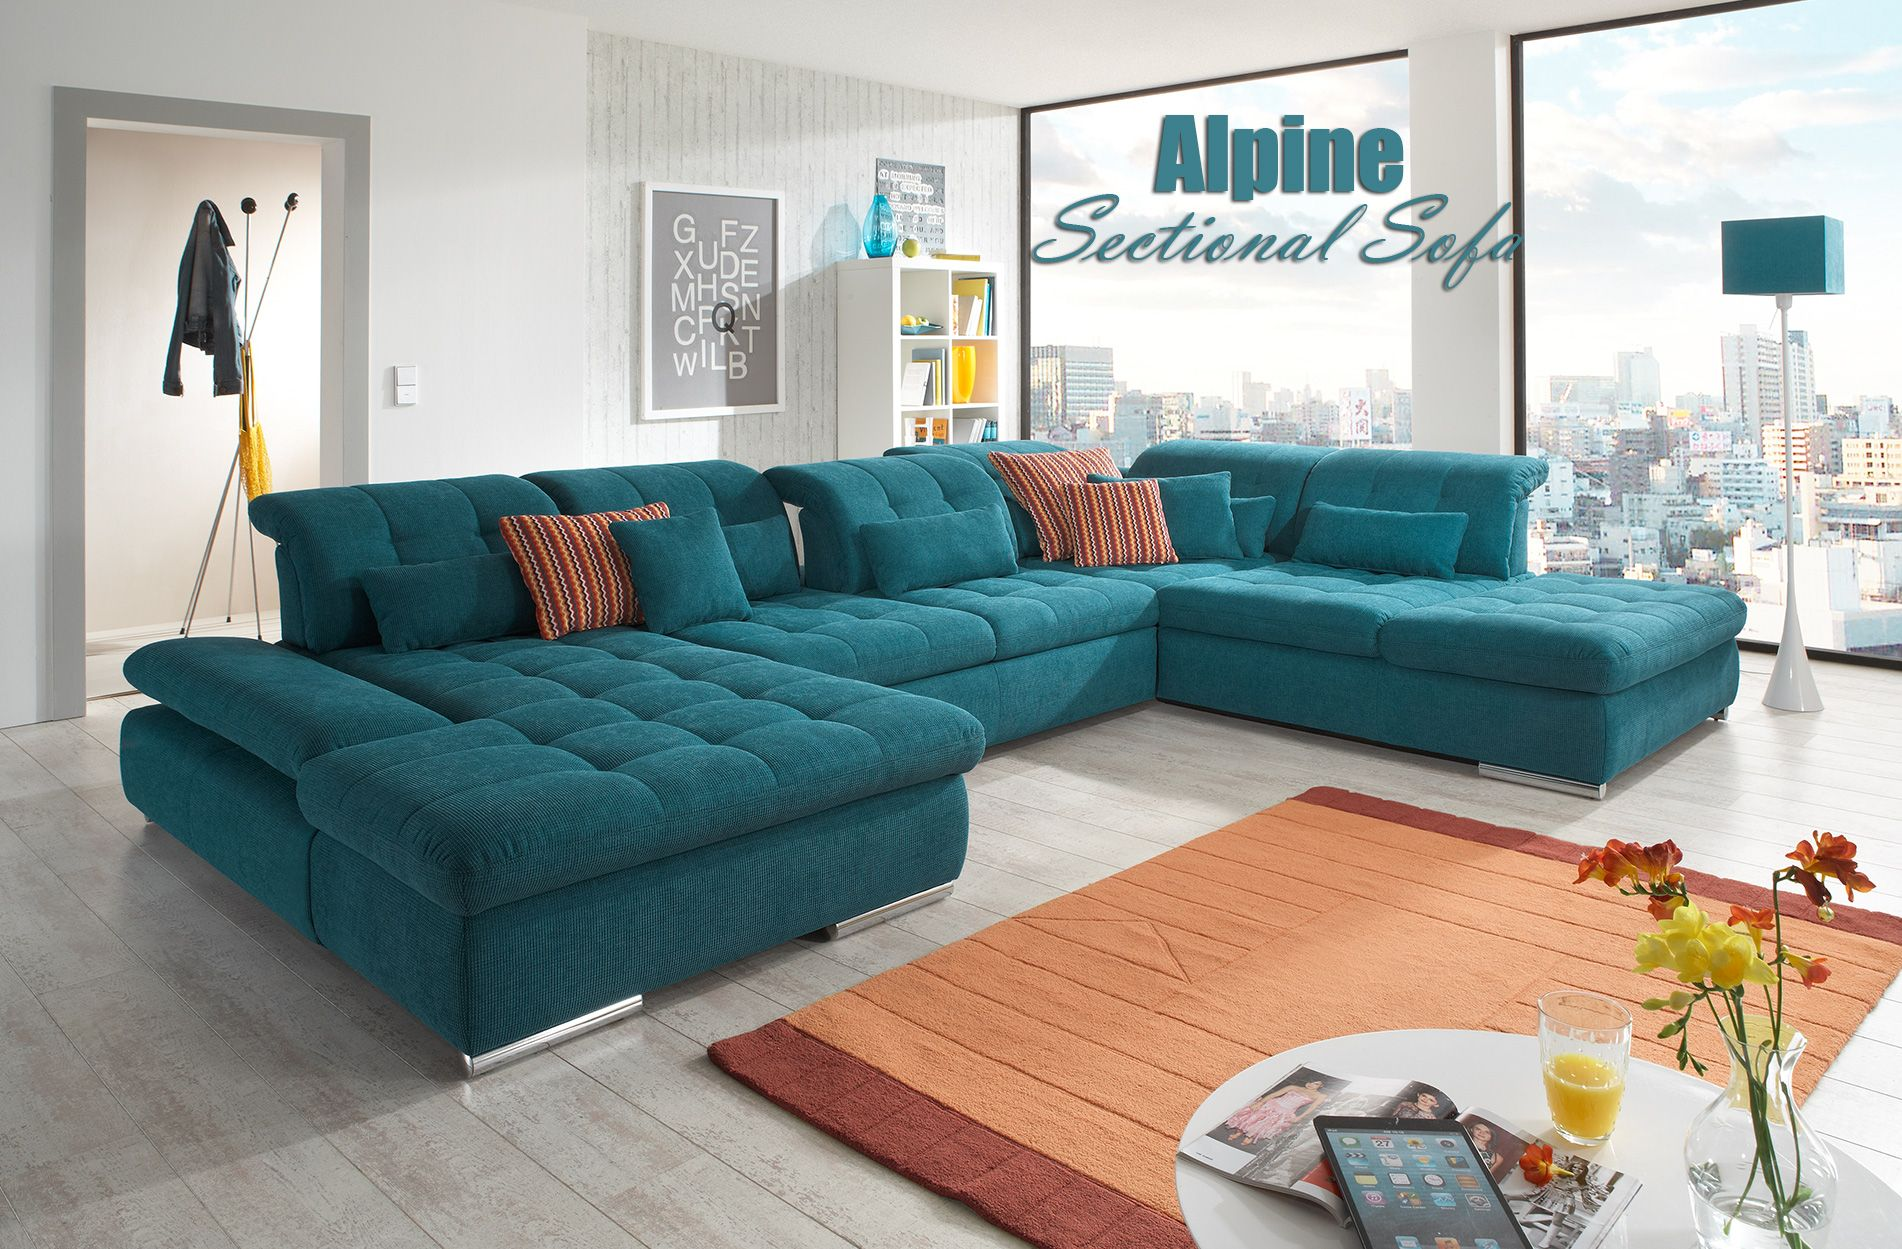 Wallach Schlafsofas Pin By Sofacouchs On Bedroom Sofa In 2019 Sectional Sleeper Sofa